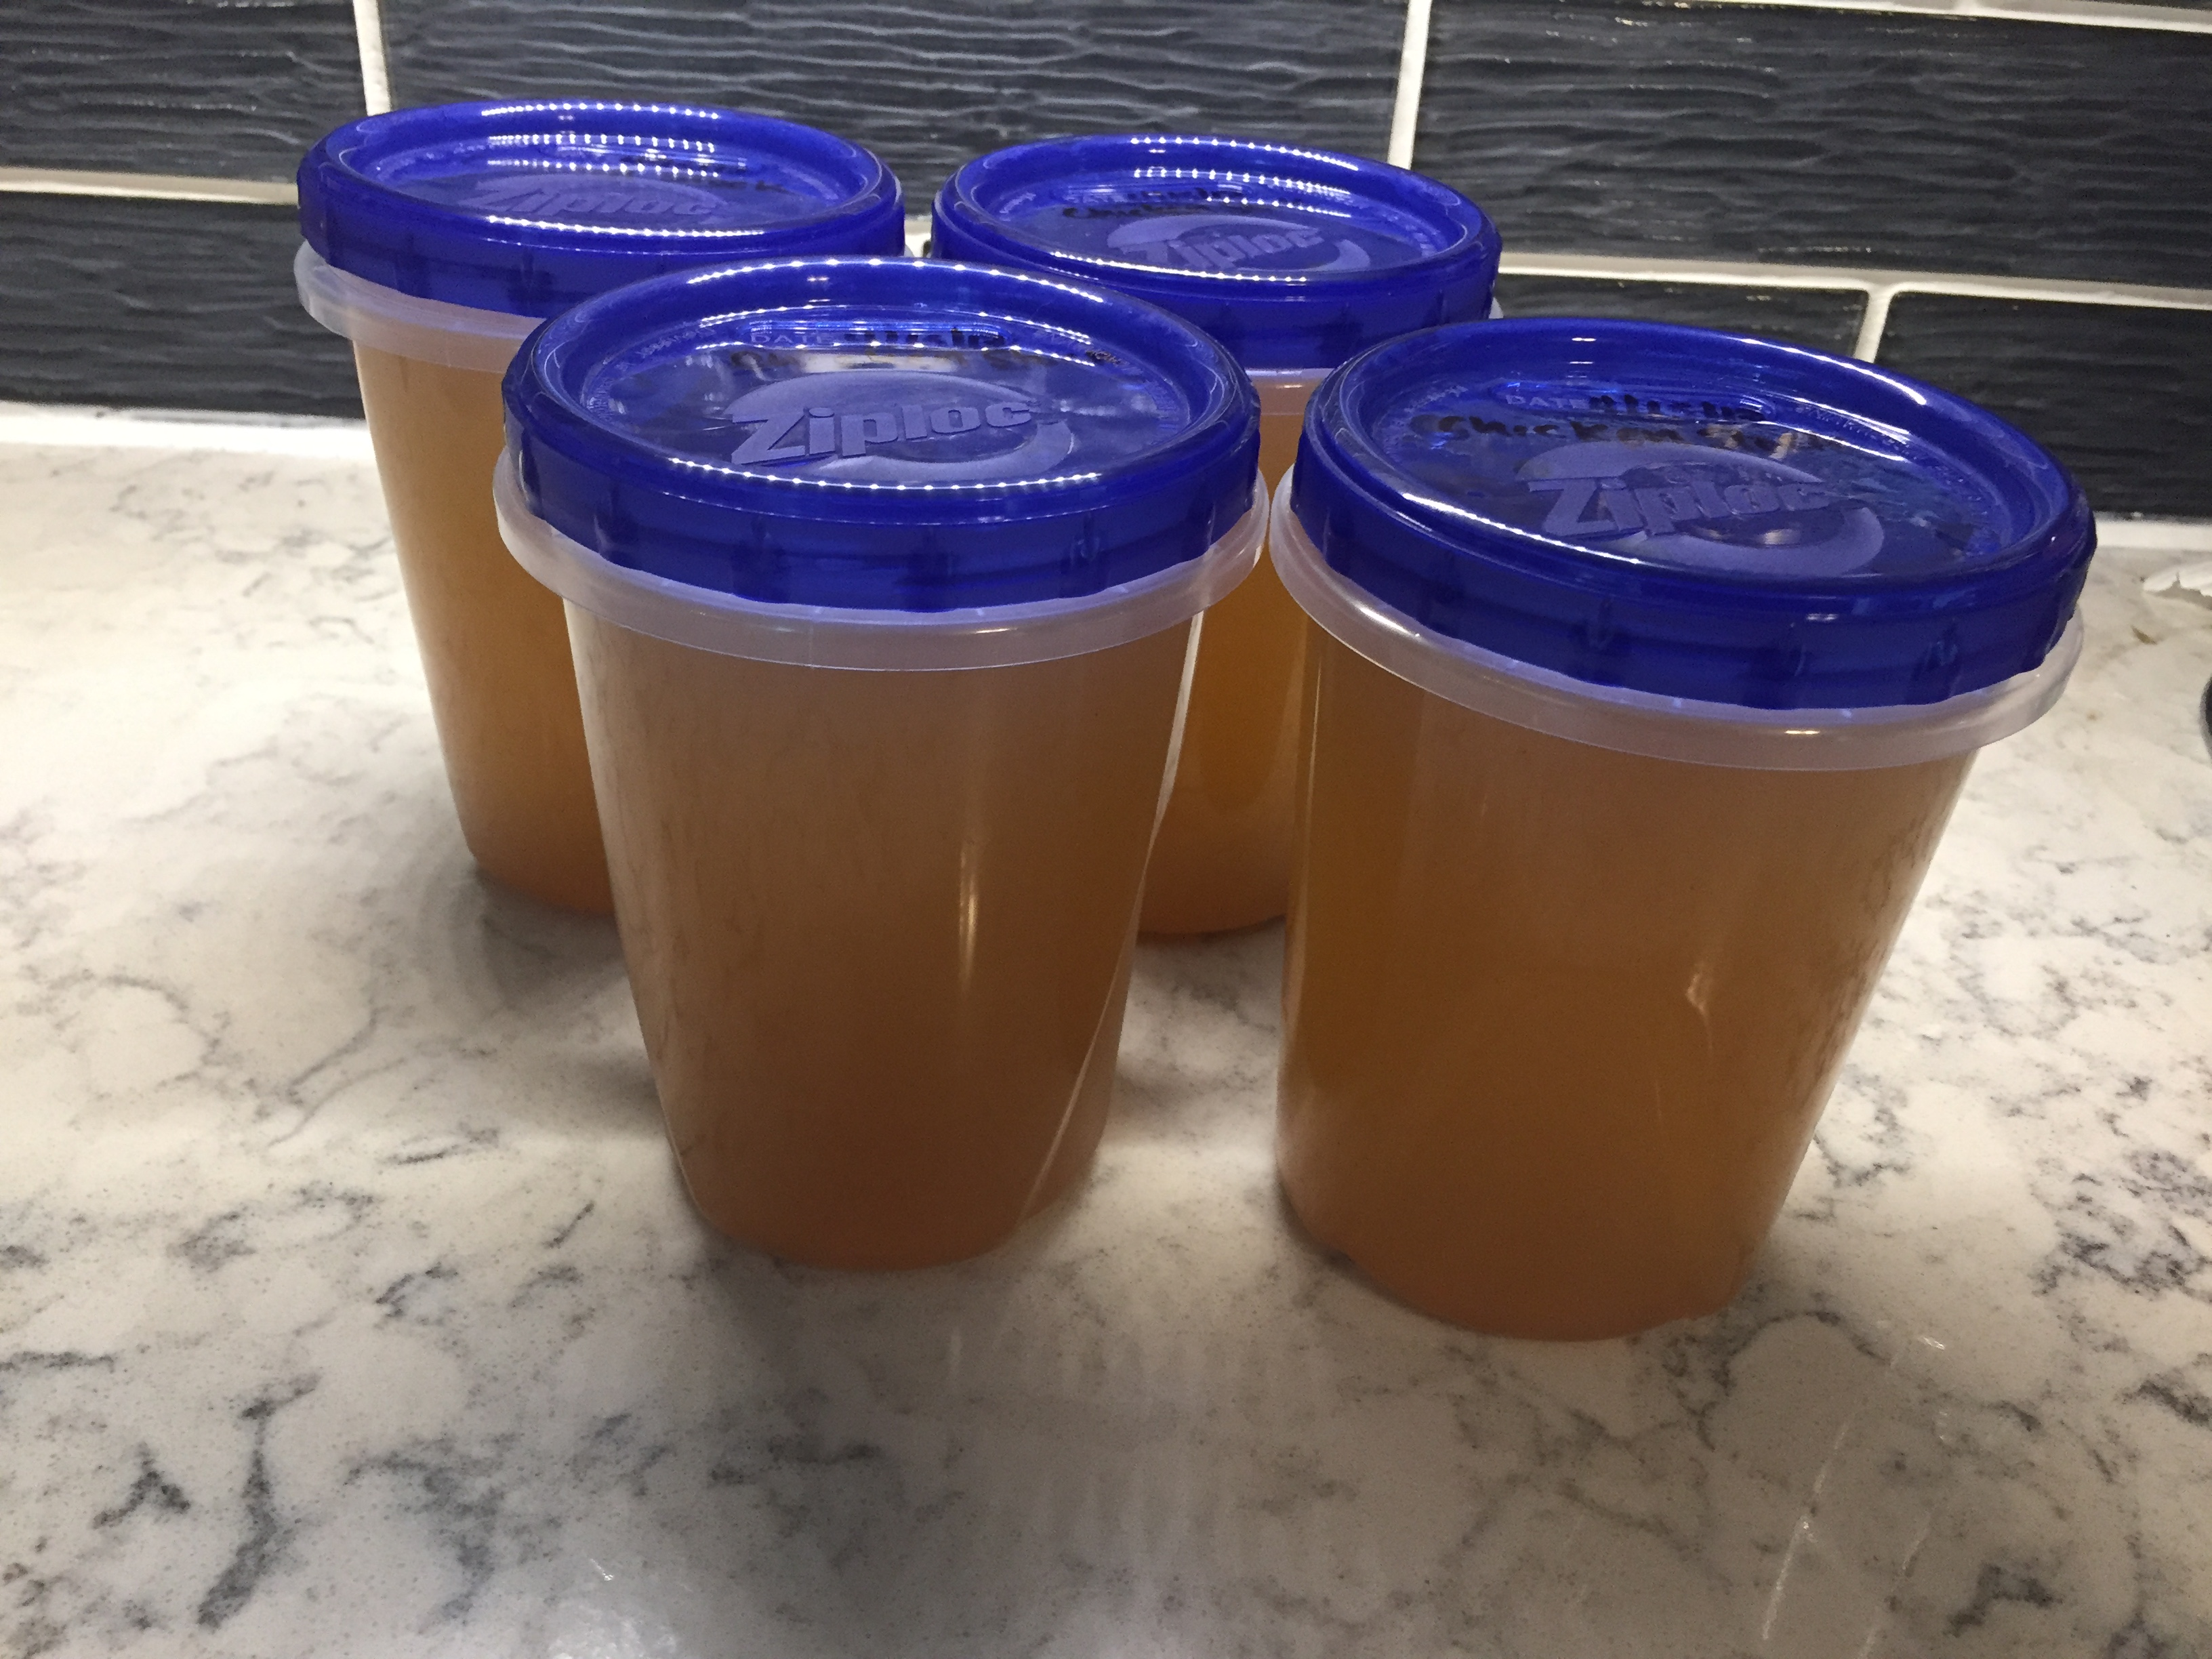 Four freezer containers of chicken broth